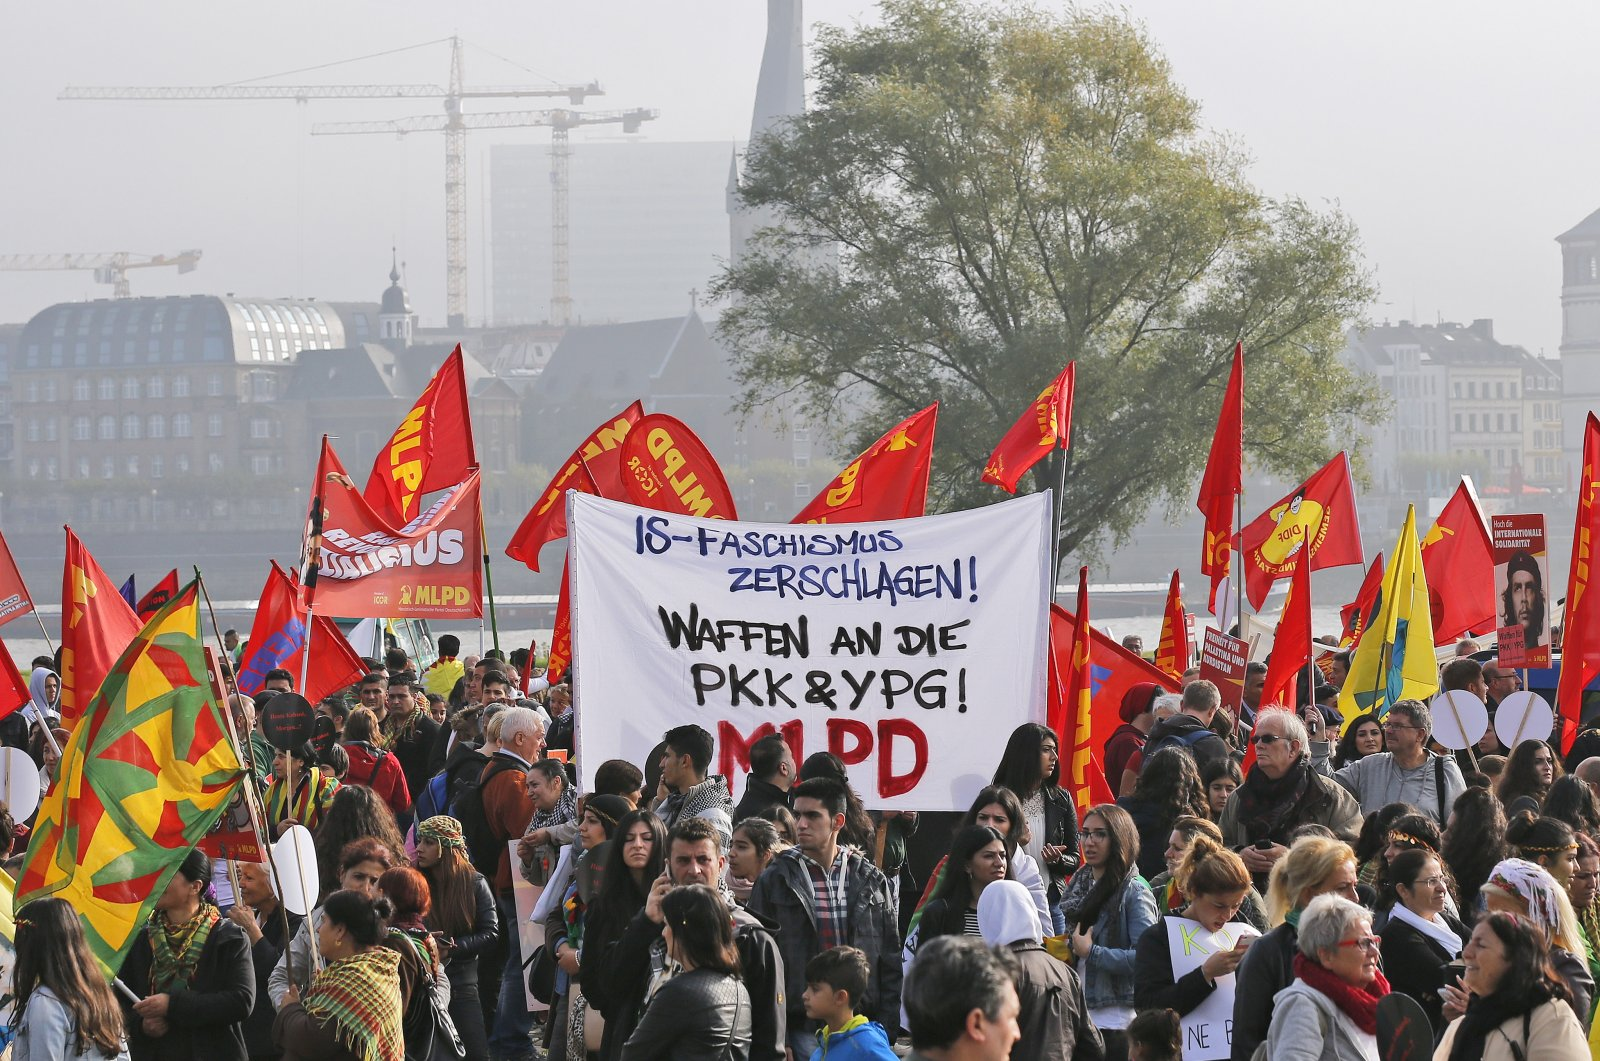 """Terrorist YPG/PKK demonstrate in Duesseldorf, Germany, Saturday, Oct. 11, 2014. Banner reads: """"Annihilate Daesh-fascism! Weapons for the PKK & YPG!"""" (AP File Photo)"""